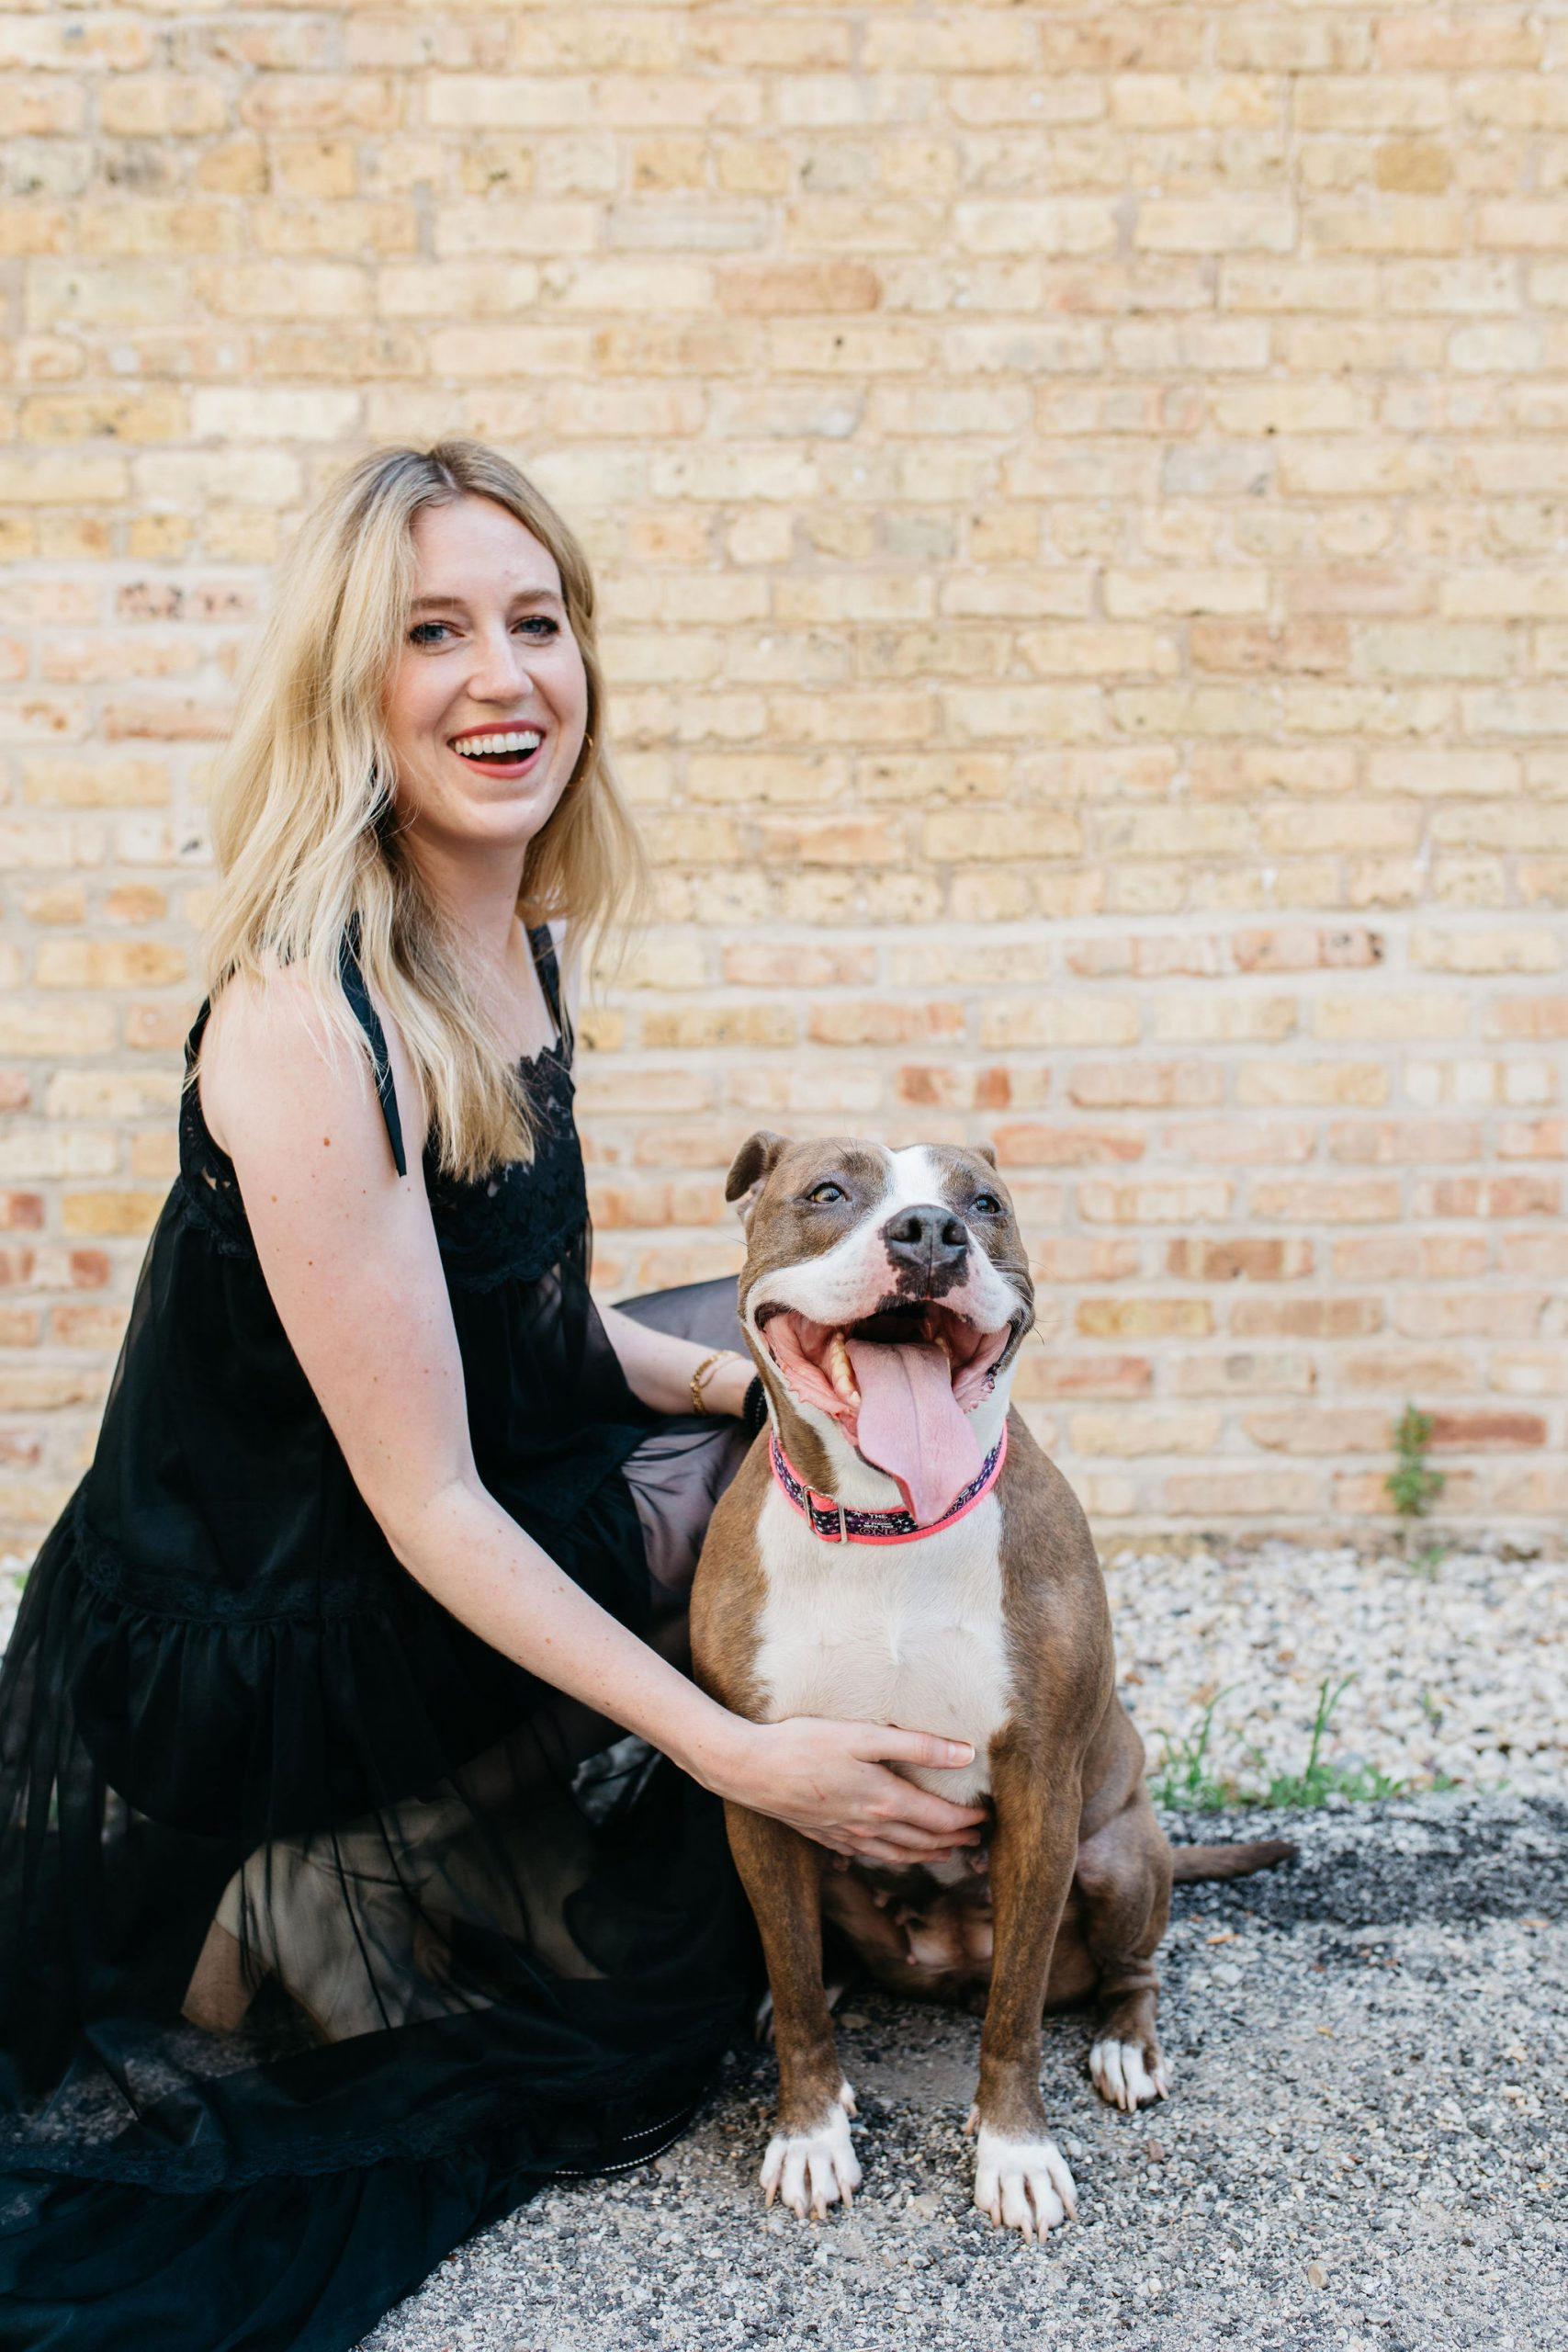 Grabbing attention through pictures: tips for the best pet photos